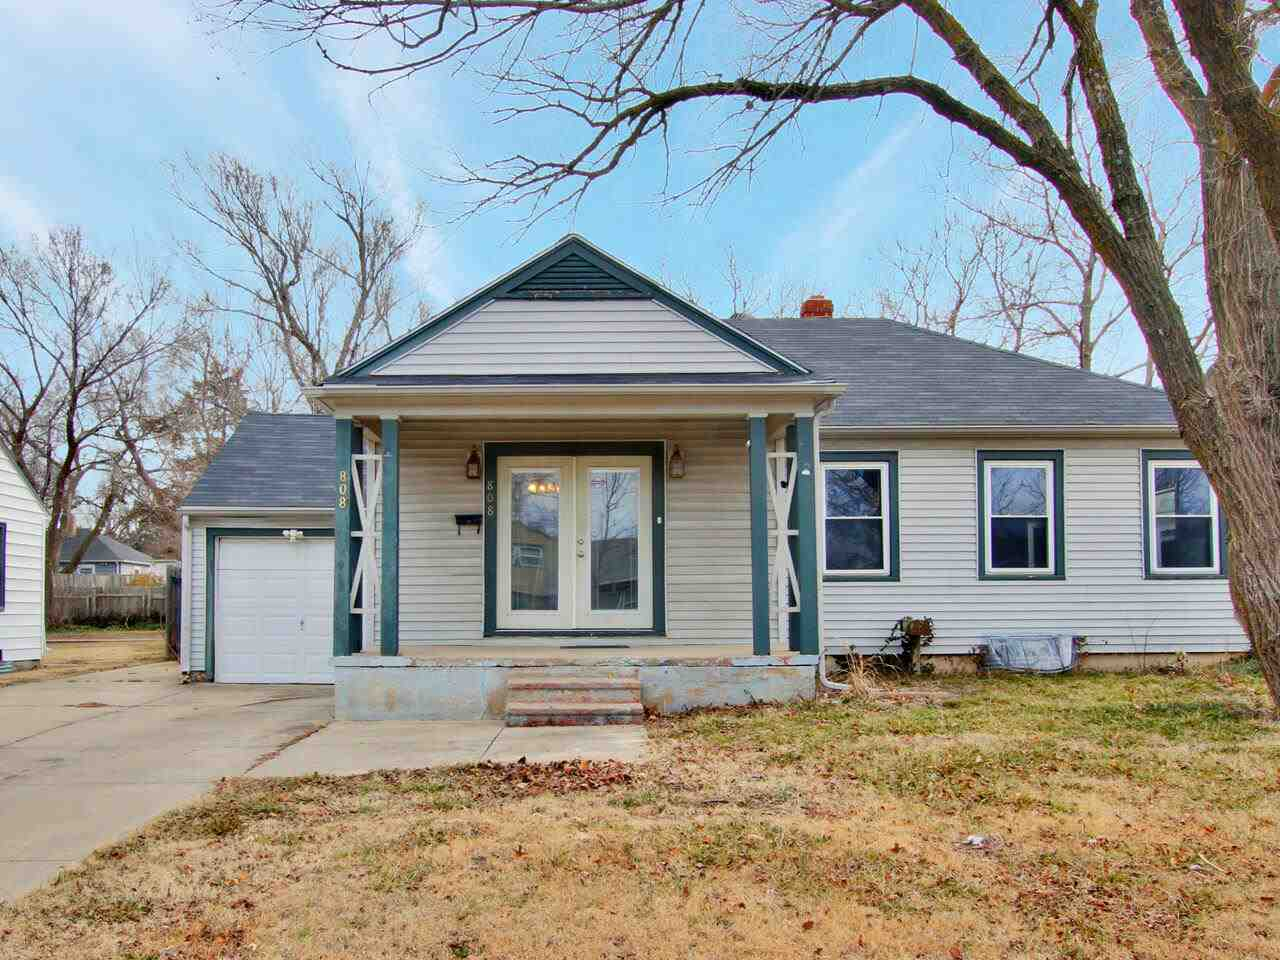 Welcome to this charming 3 bedroom, 2 bath house located just north of the College Hill area.   The